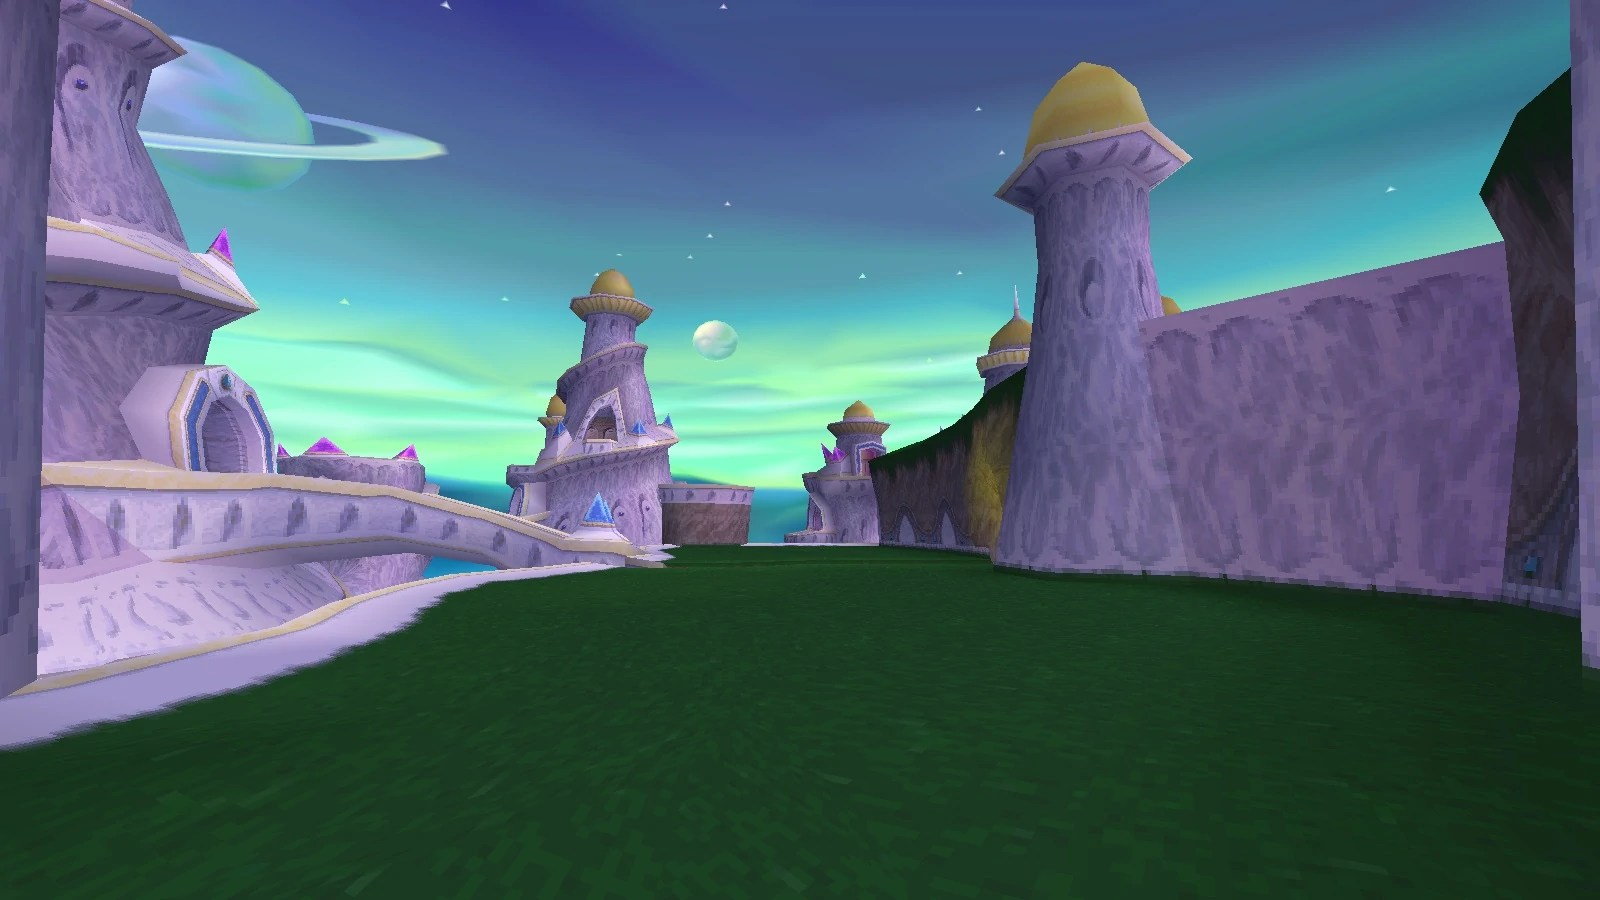 Enchanted Towers The Spyro Wiki Spyro Sparx The Legend Of Spyro Skylanders And More